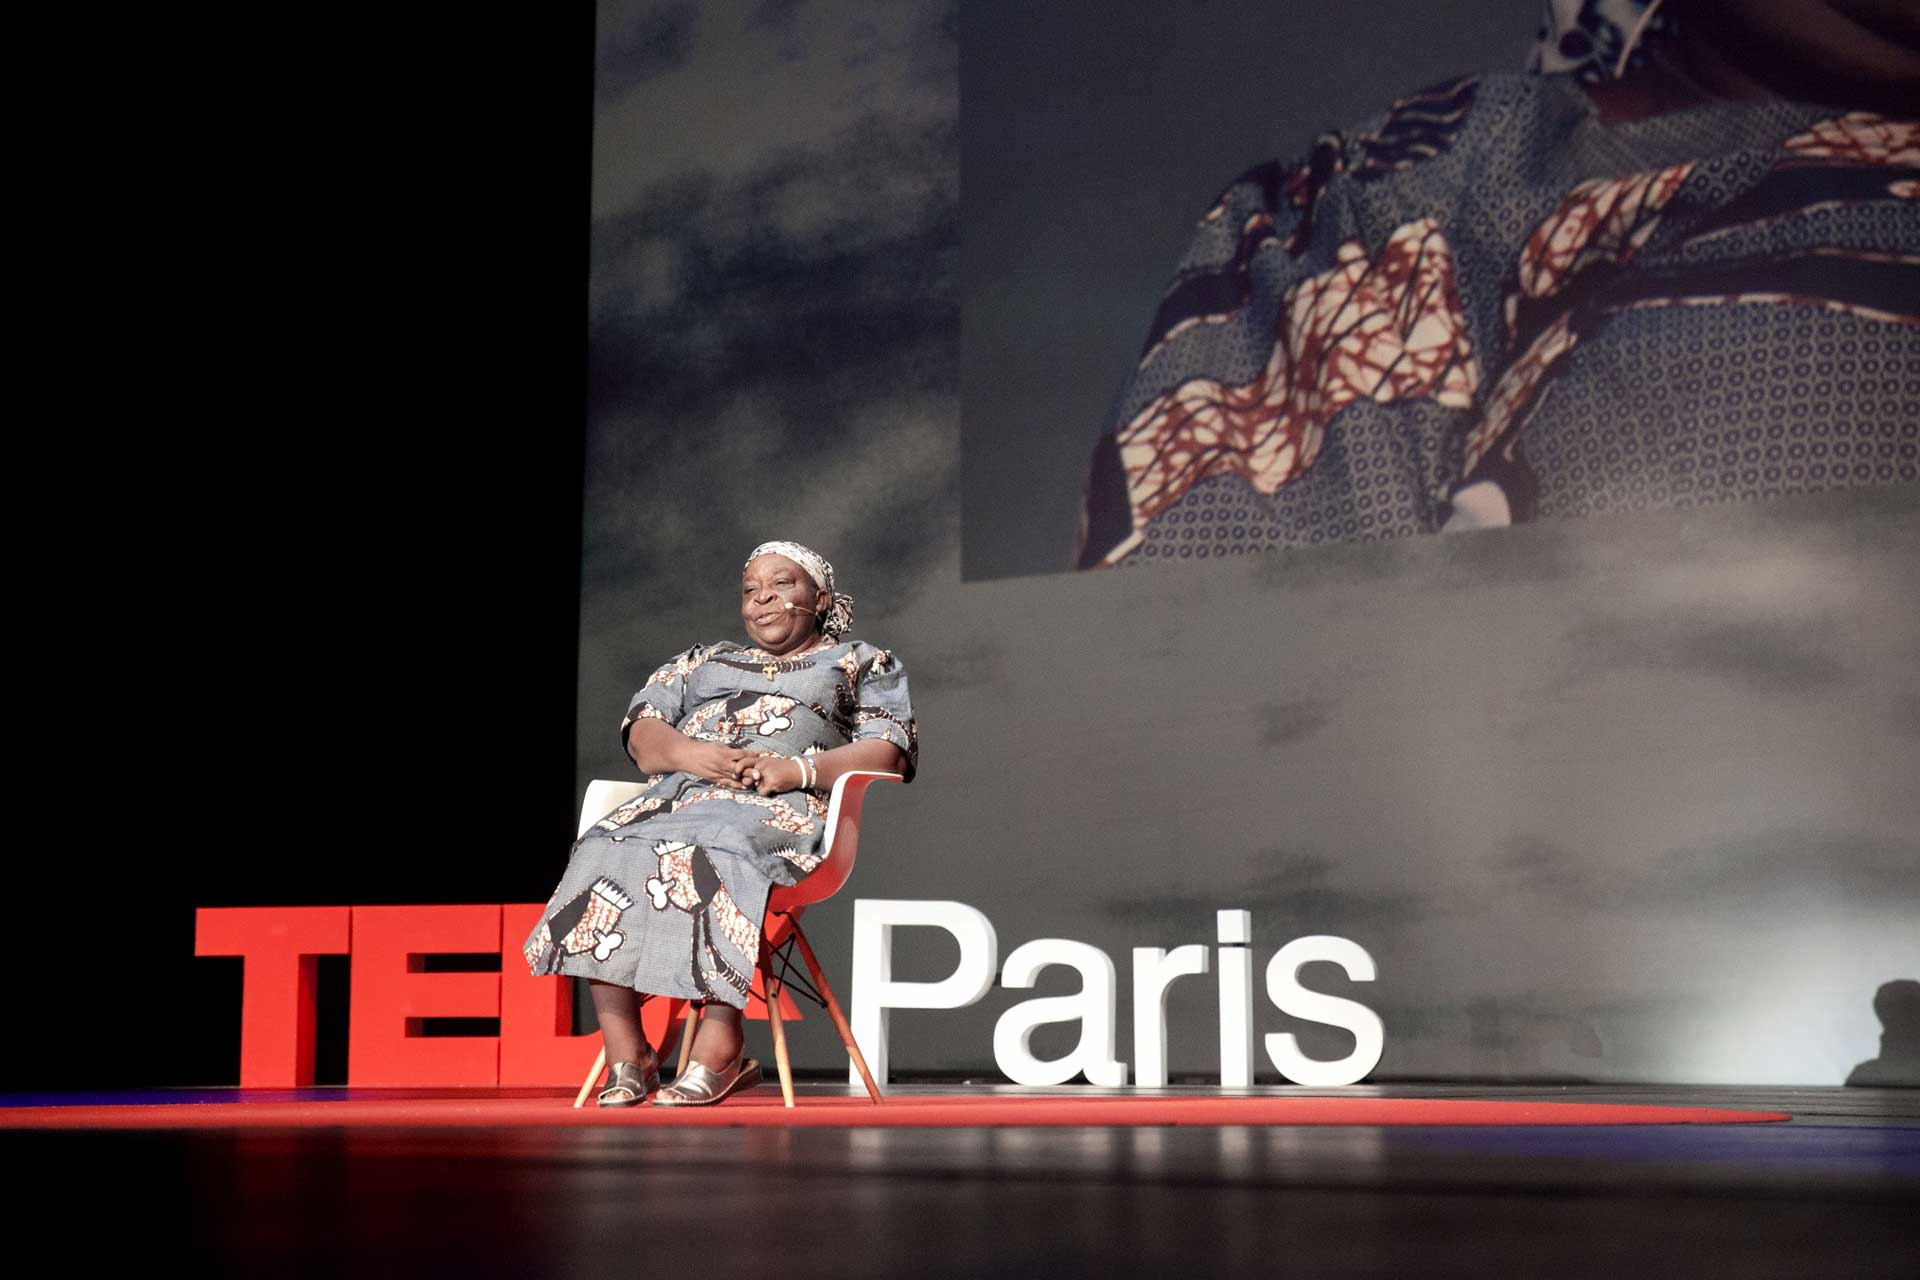 conference-TEDxParis-2014-16.jpg